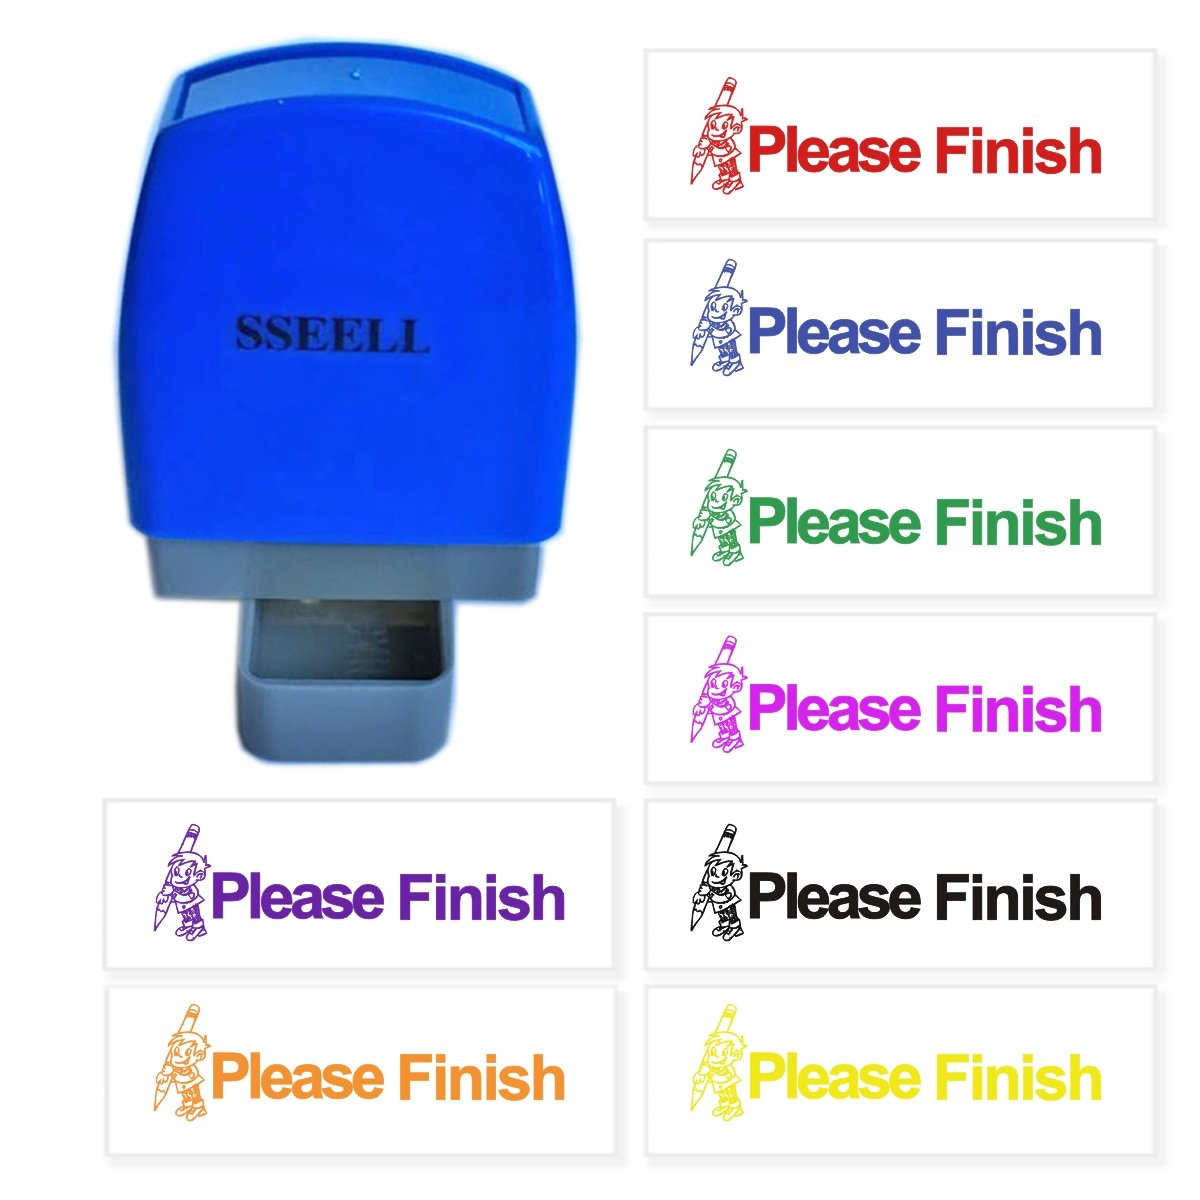 SSEELL Please Finish Reward Stamp Self Inking for School Student Teacher Homework Feedback Stamp Rubber Flash Stamp Self-Inking Pre-Inked RE-inkable School Stationary - Purple Ink Color